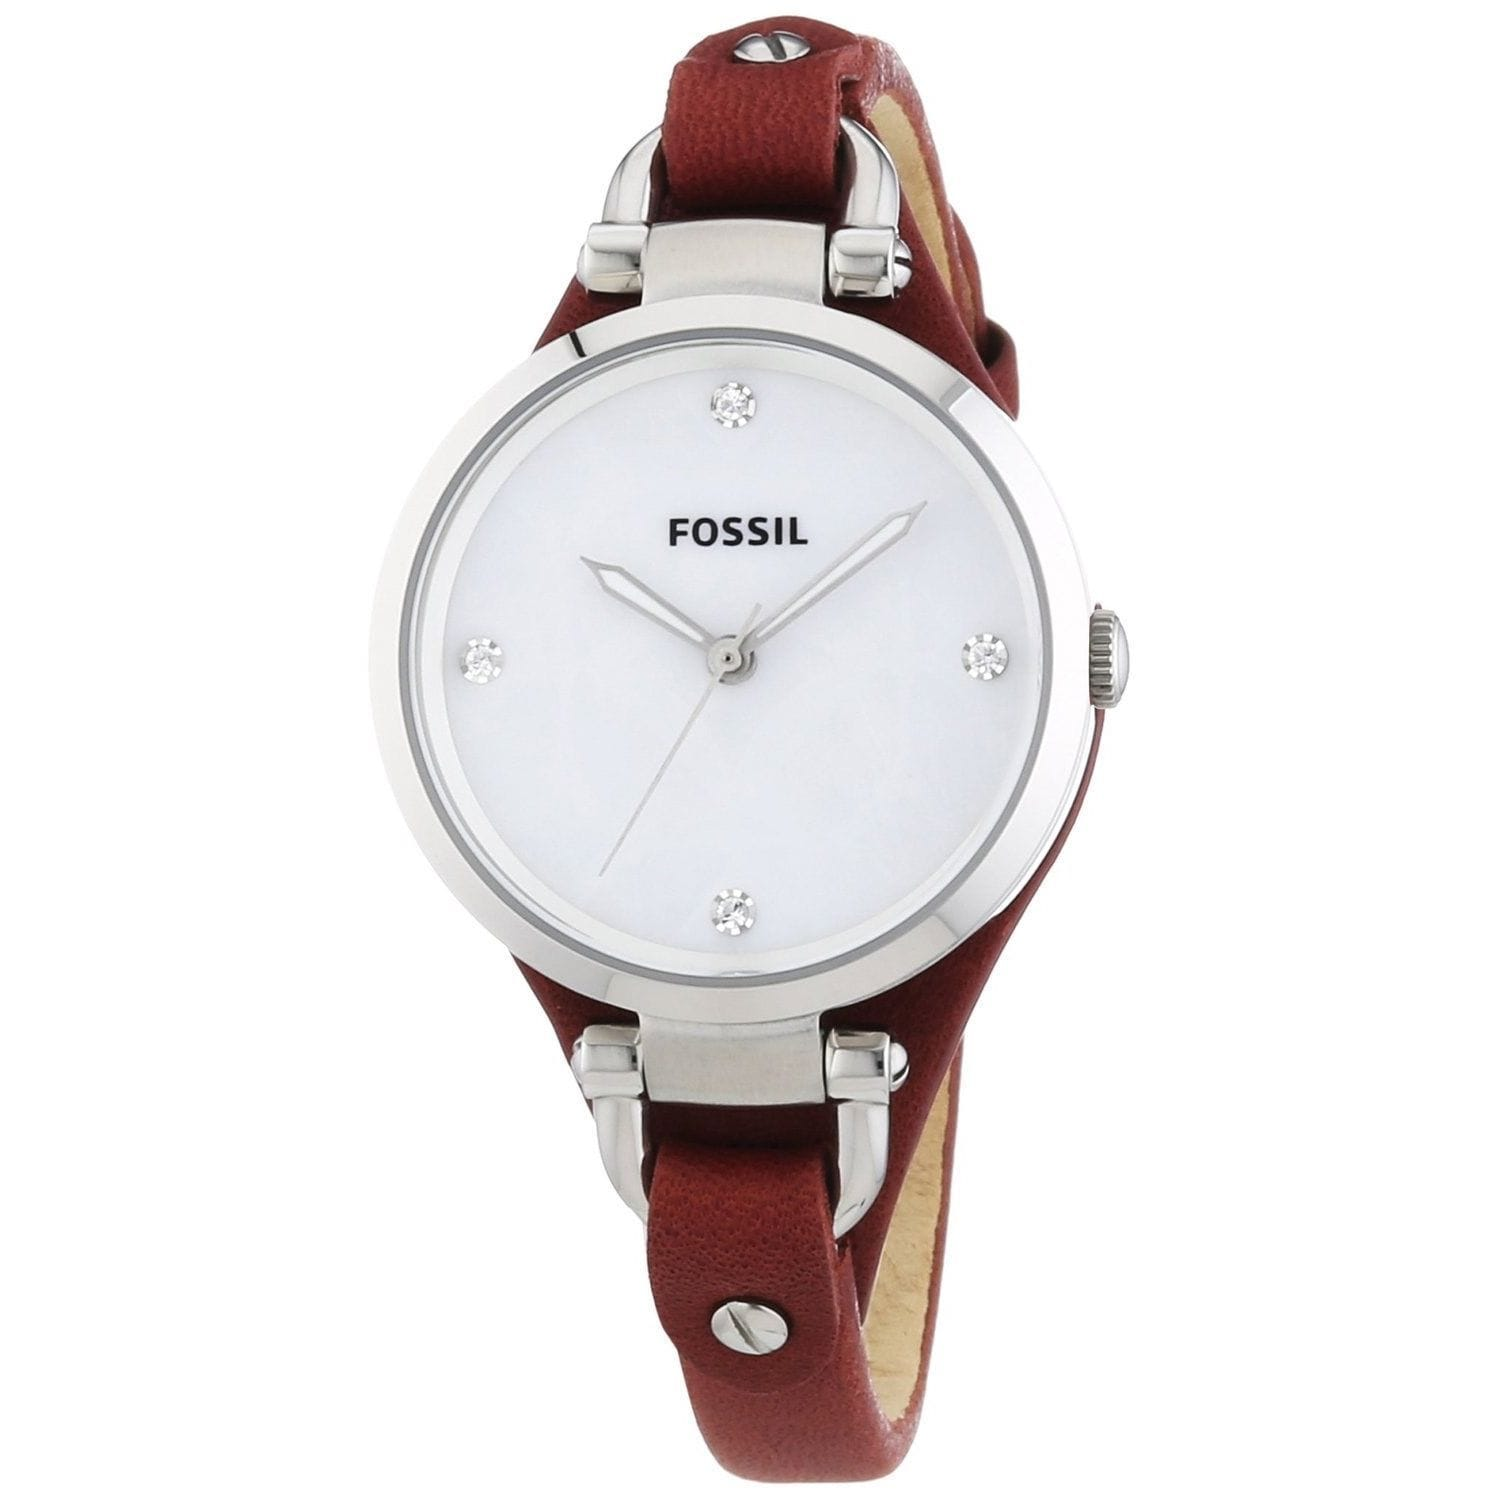 Fossil Women's Georgia Mother of Pearl Watch, Size One Si...